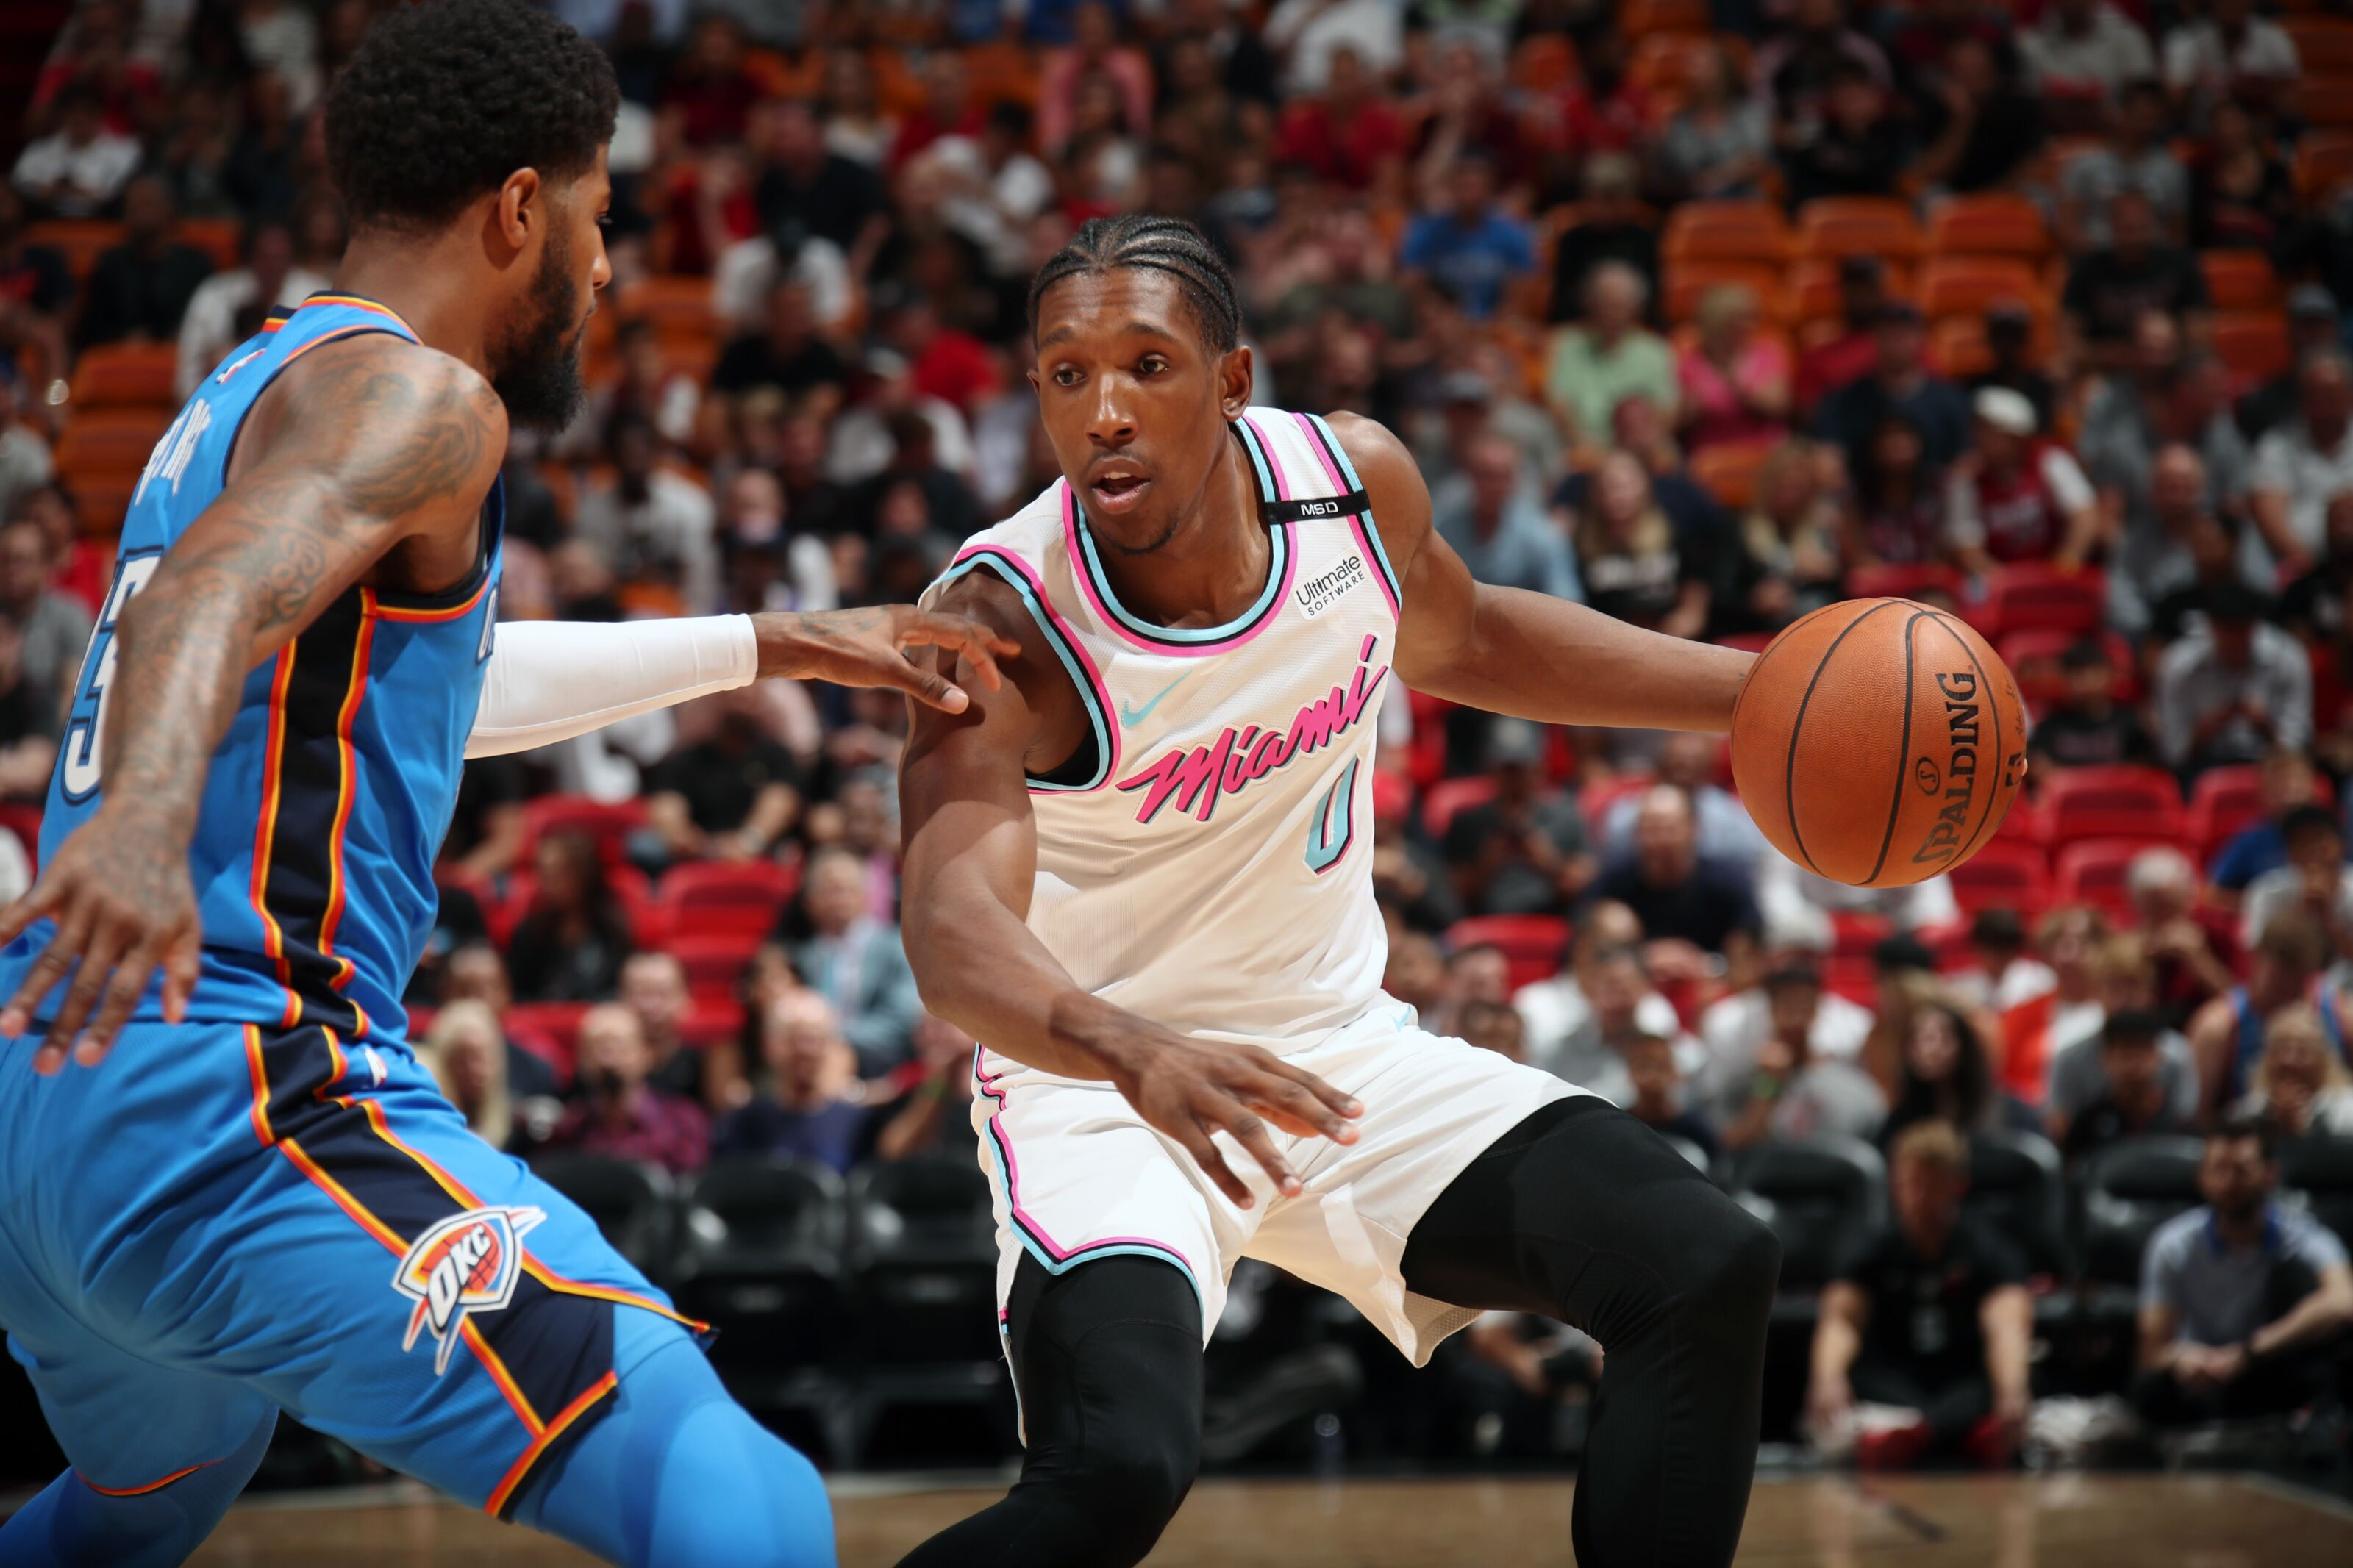 943952780-oklahoma-city-thunder-v-miami-heat.jpg